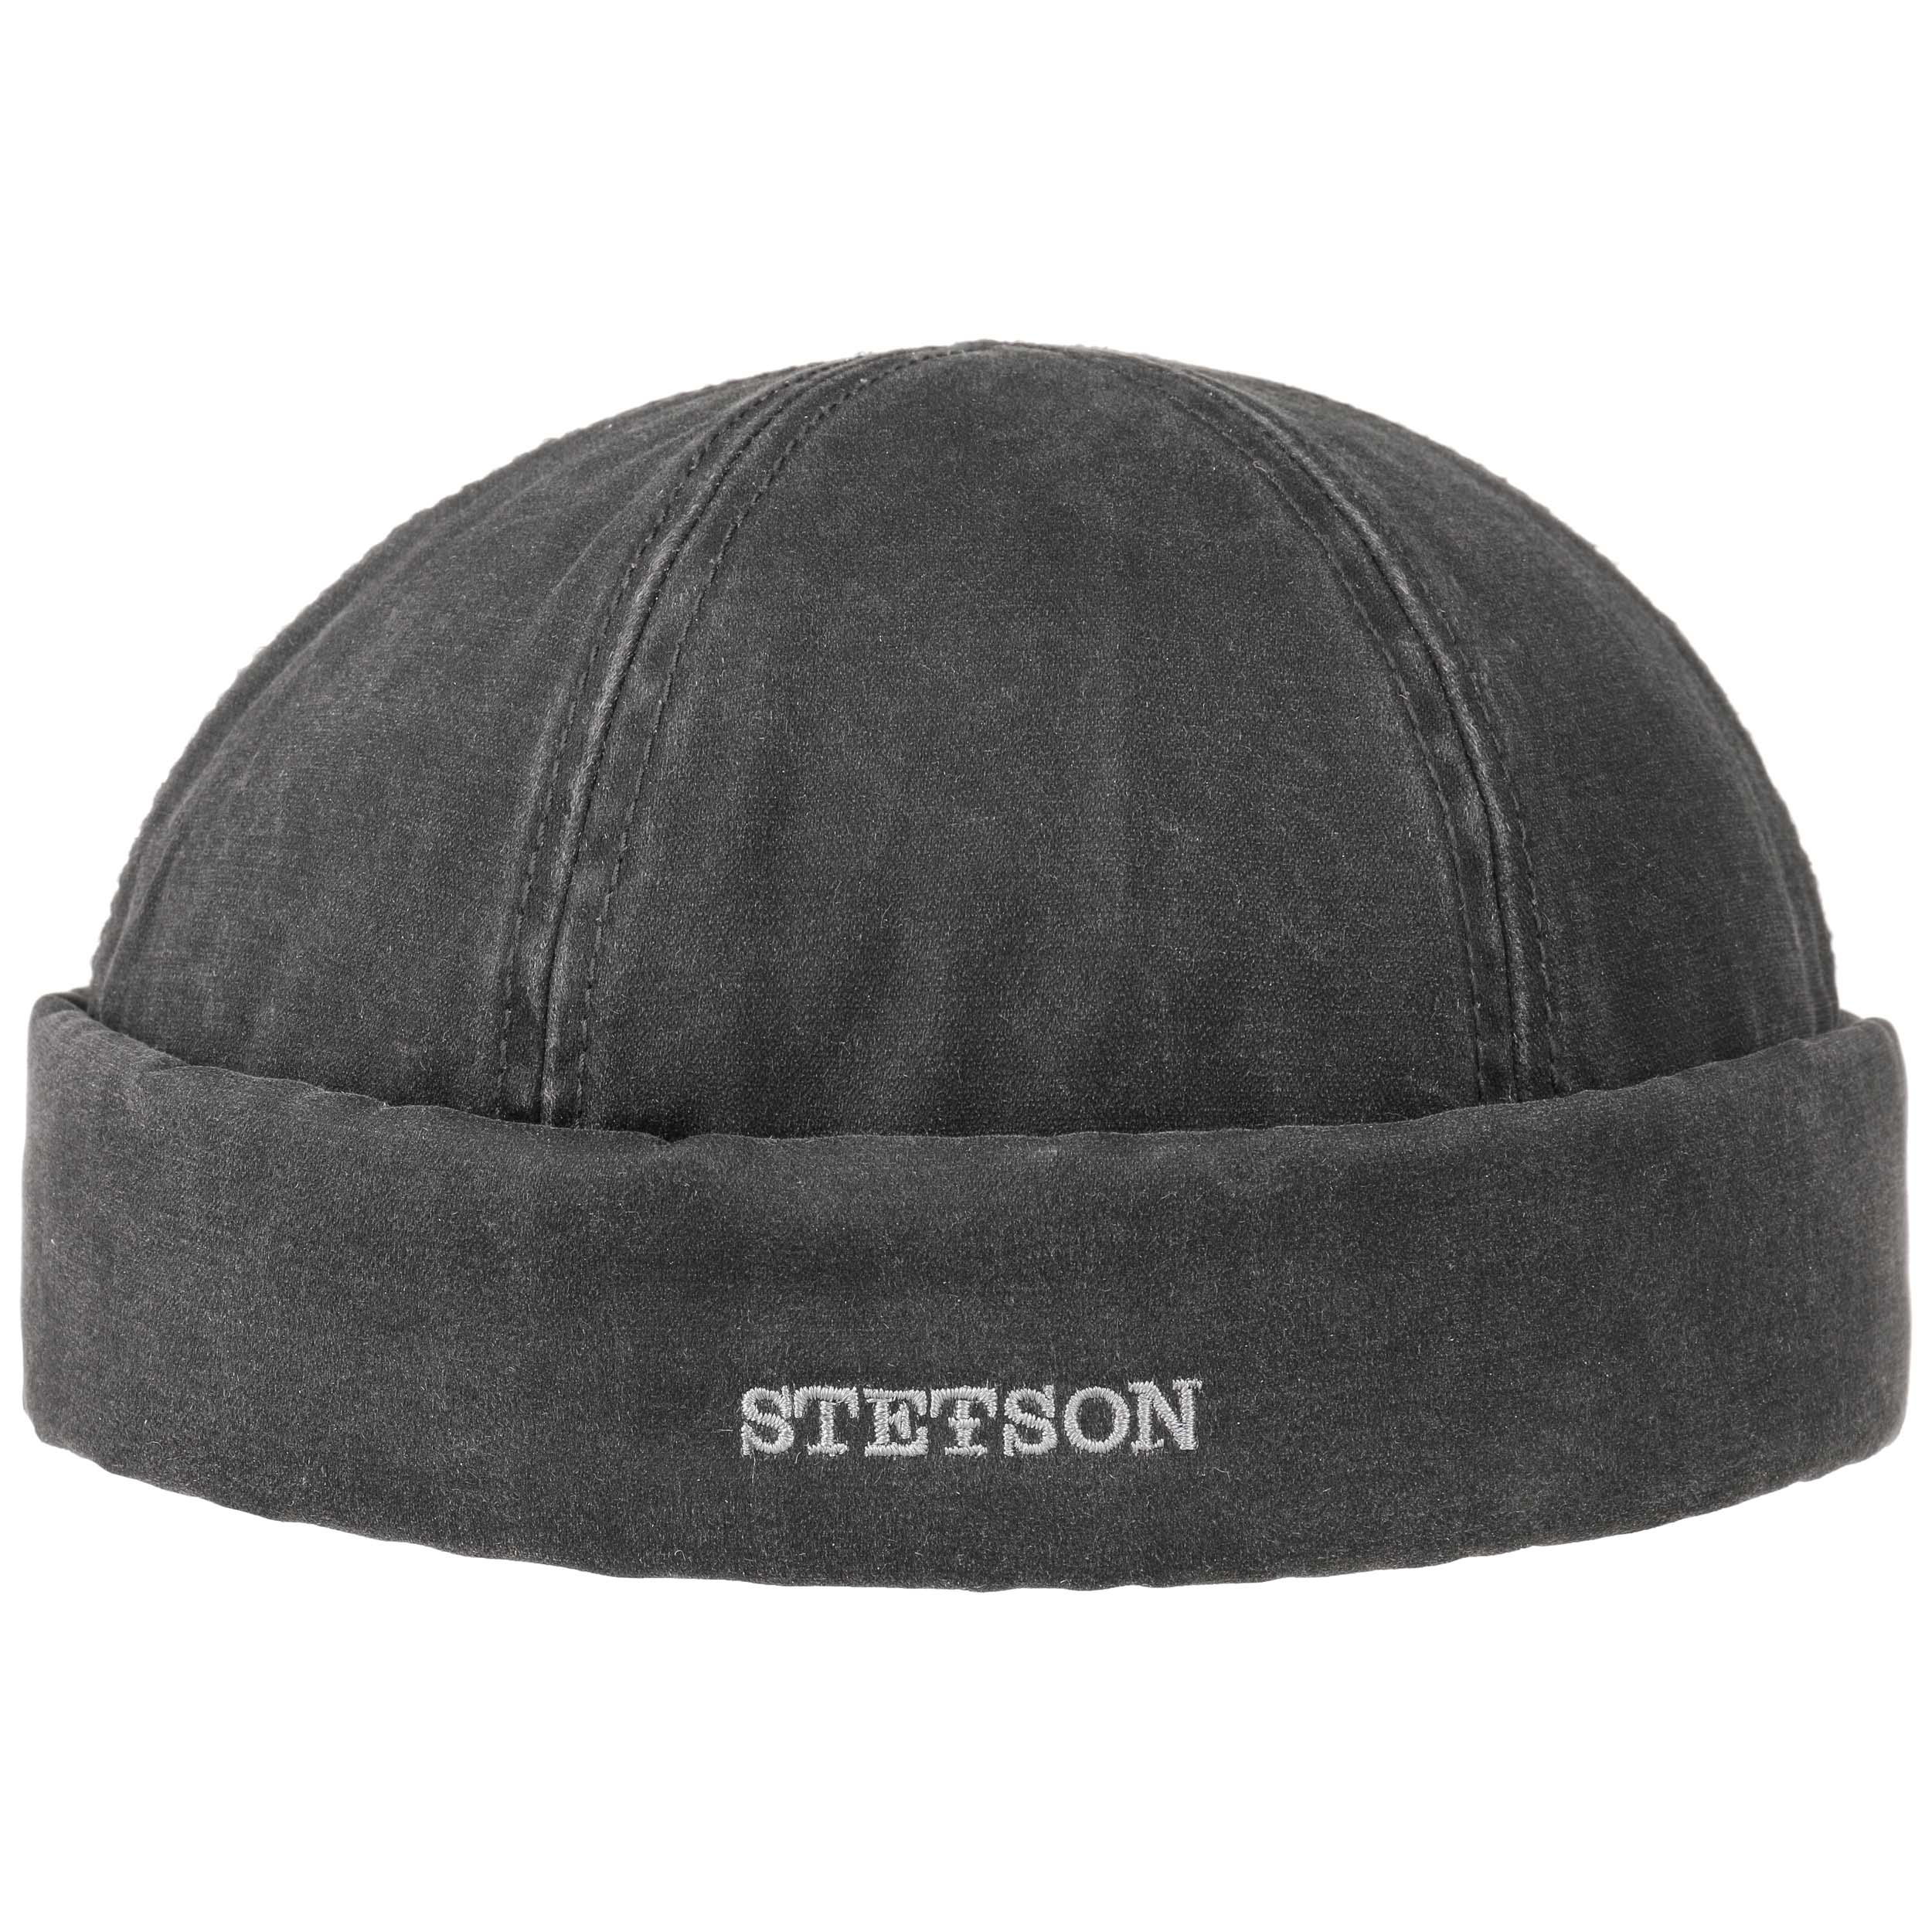 Stetson Docker Waxed Cotton Black